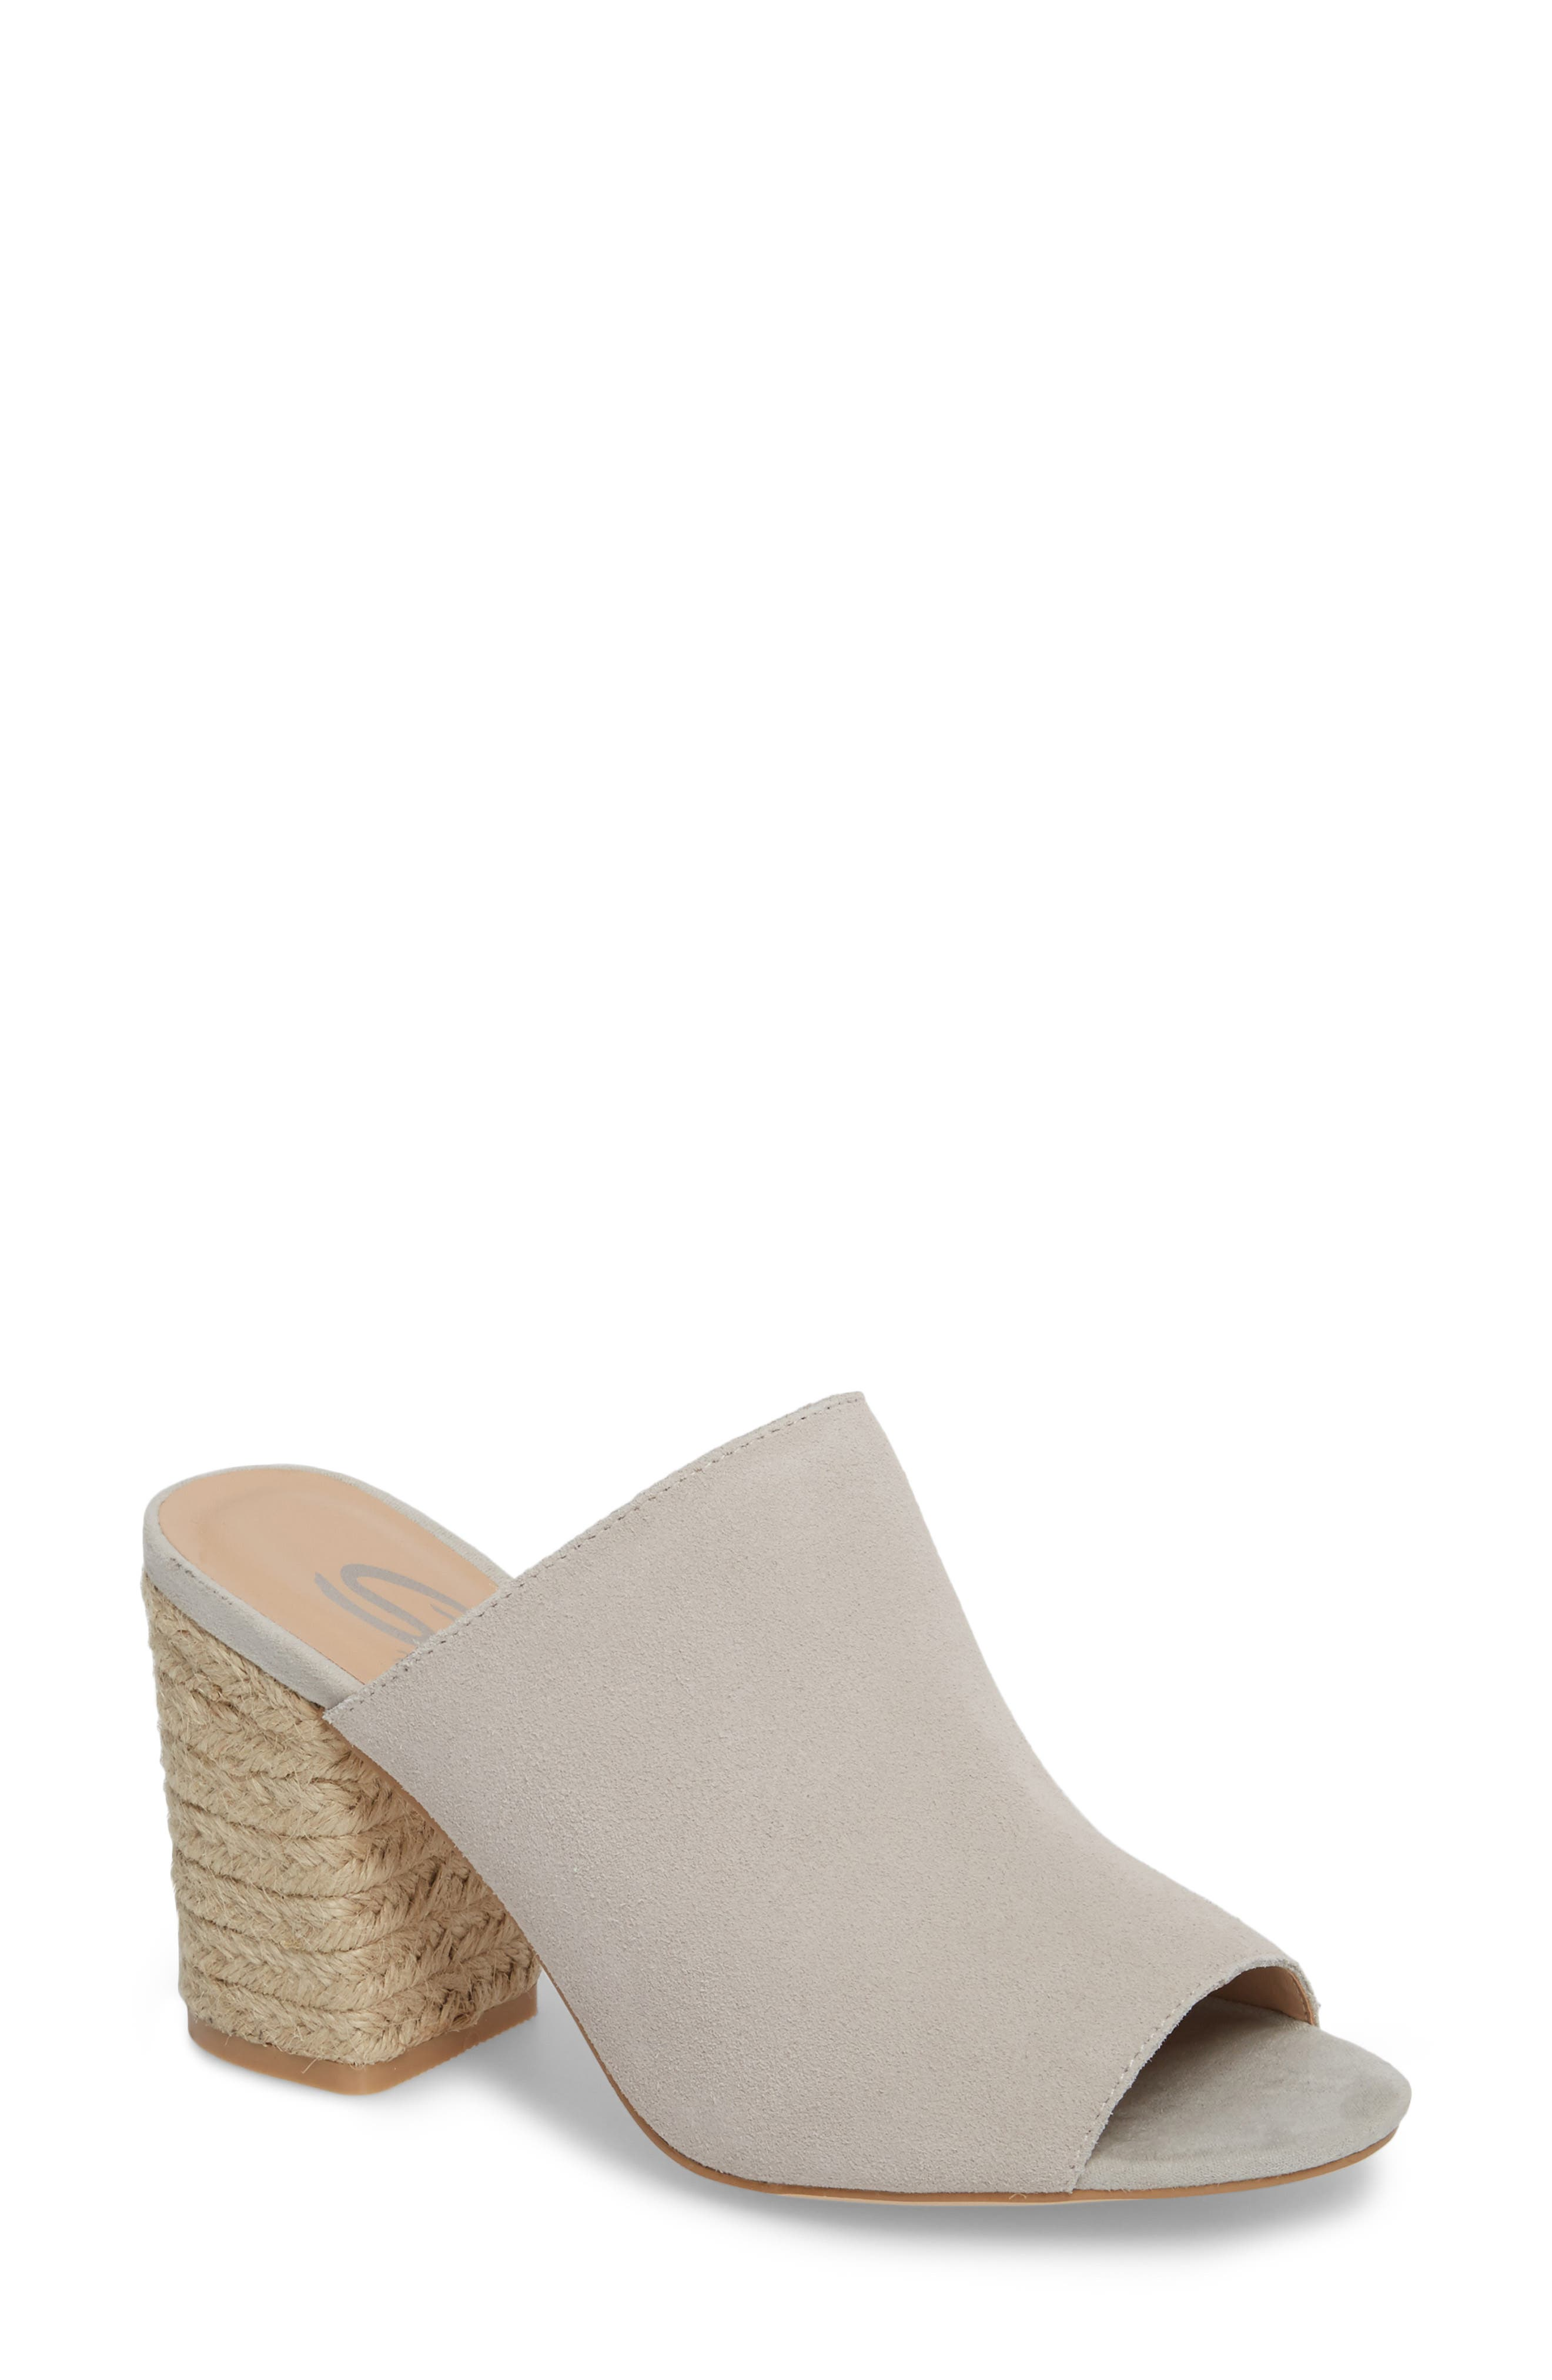 Helena Sandal,                         Main,                         color, Ice Suede/ Leather